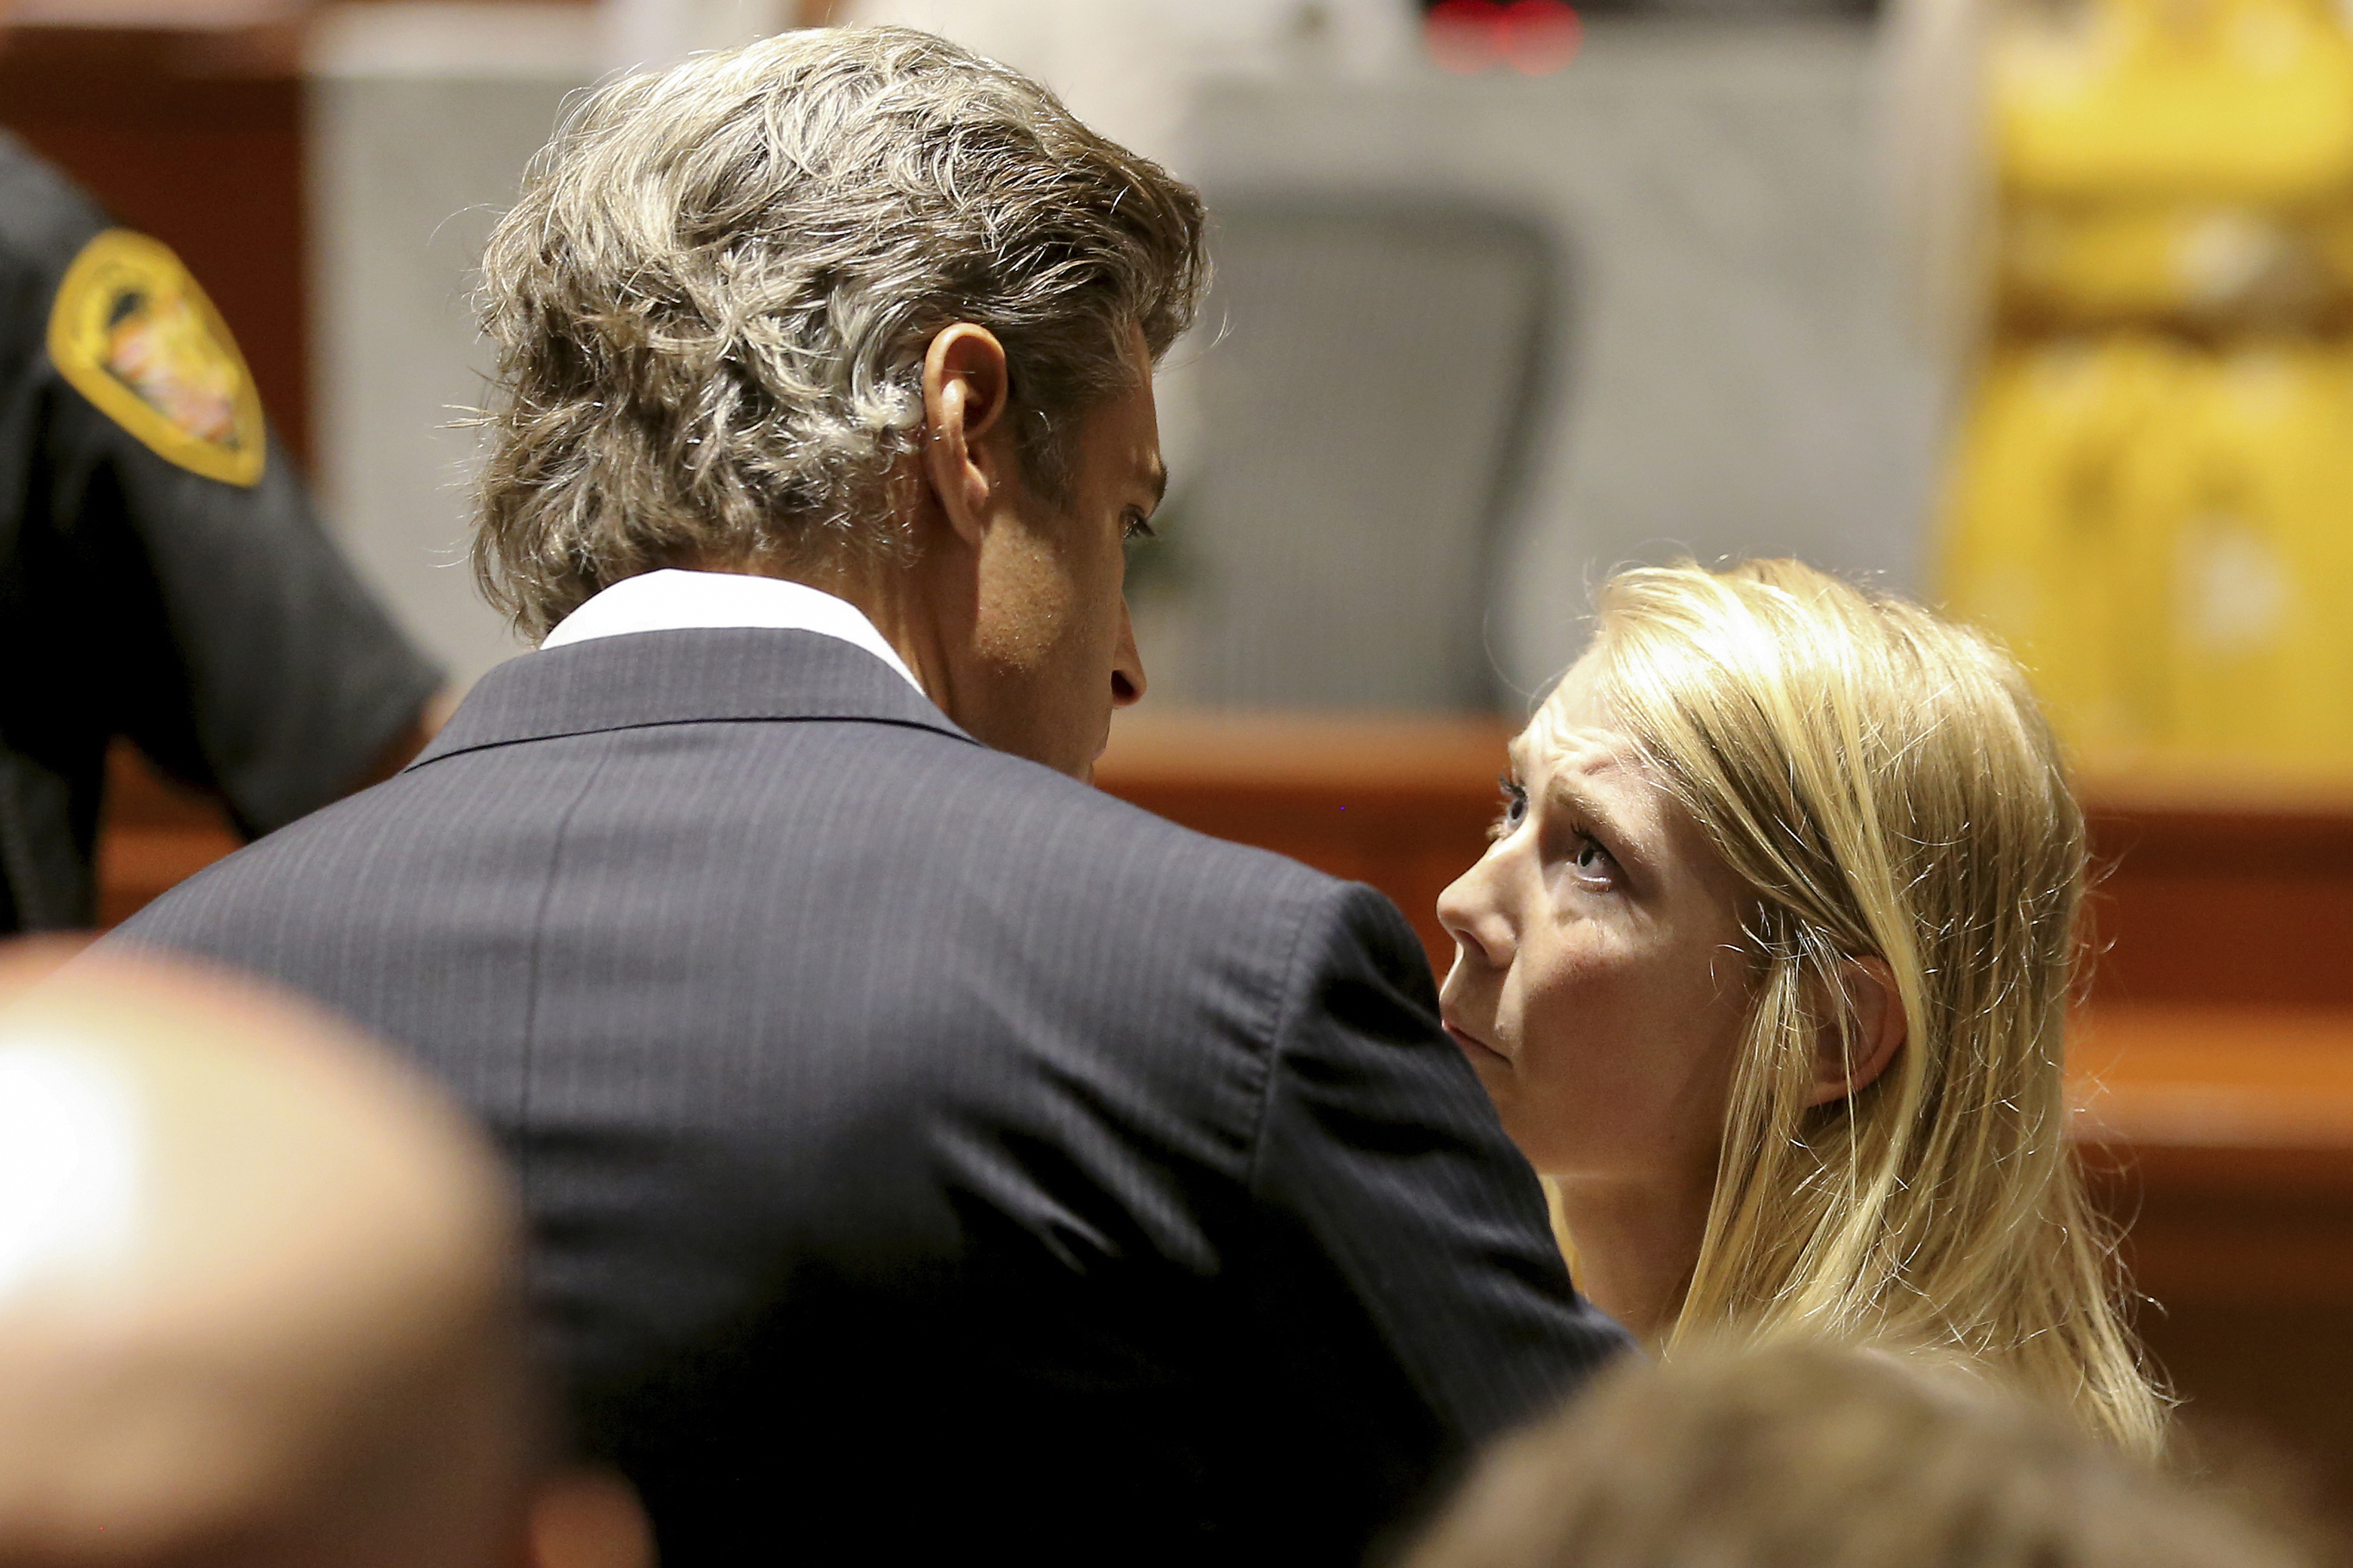 Young mom sentenced to 3 years of probation for corpse abuse